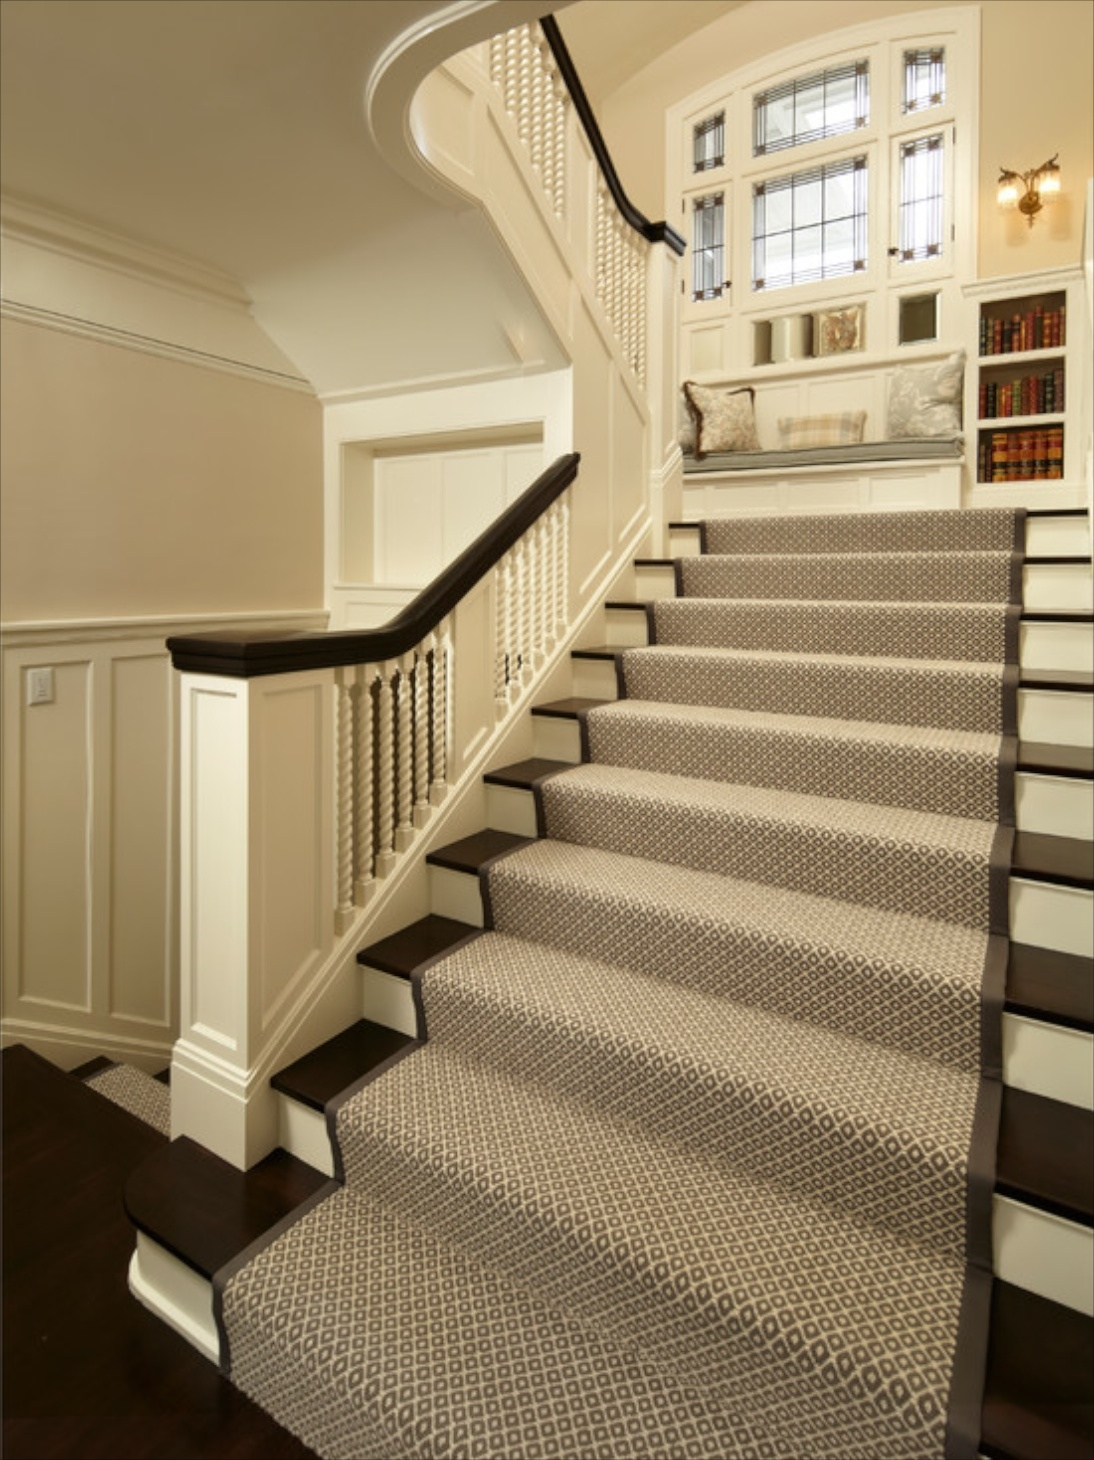 Rug Stair Grips Carpet Strips For Stairs Carpet Stair Treads Regarding Carpet Strips For Stairs (#20 of 20)